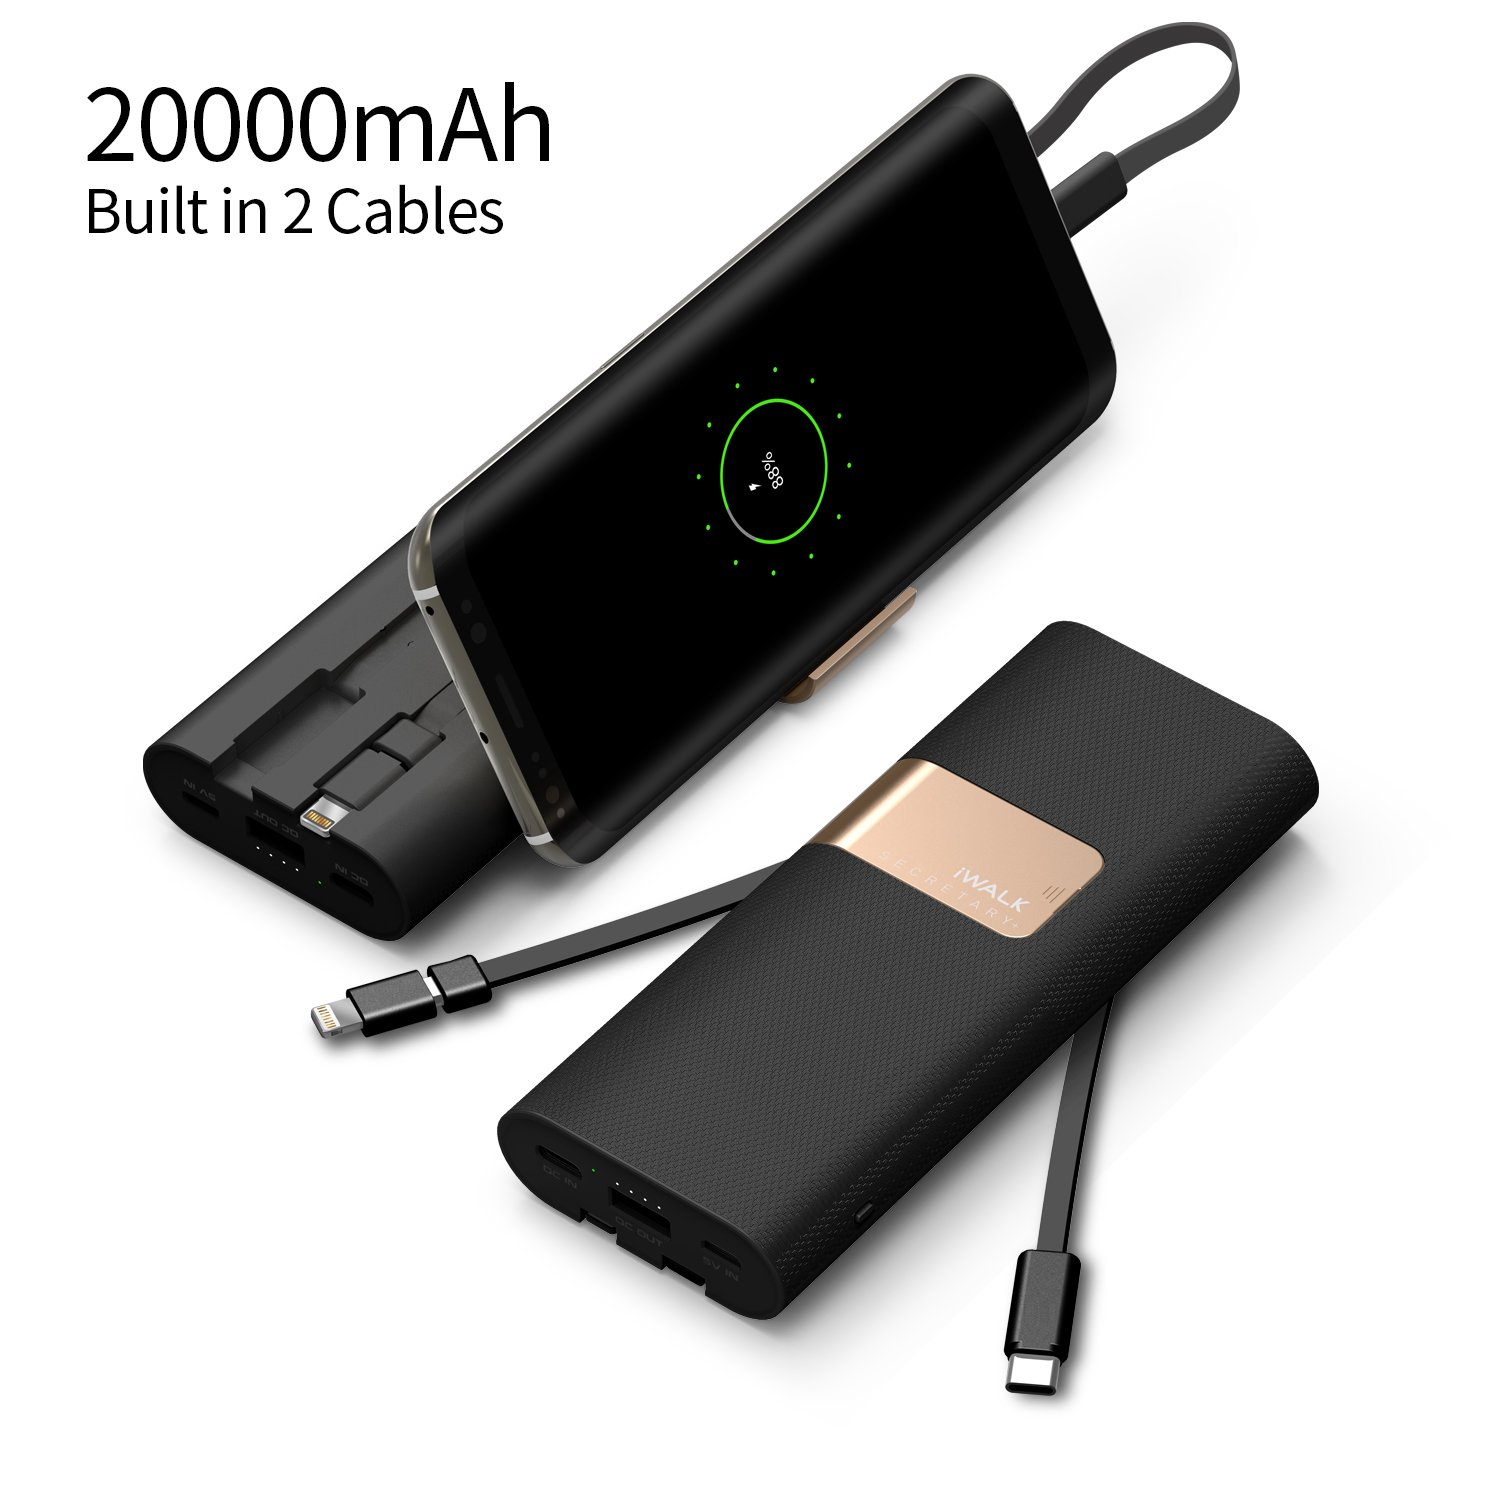 iWALK 20000mAh Power Bank Quick Charge QC3.0/2.0 Built-in Lightning Type-C & Micro USB Cables Portable External Battery Pack Charger,Compatible iPhone X 8 7 6 5s Plus,Samsung S9/S8/S7 and More(Black)